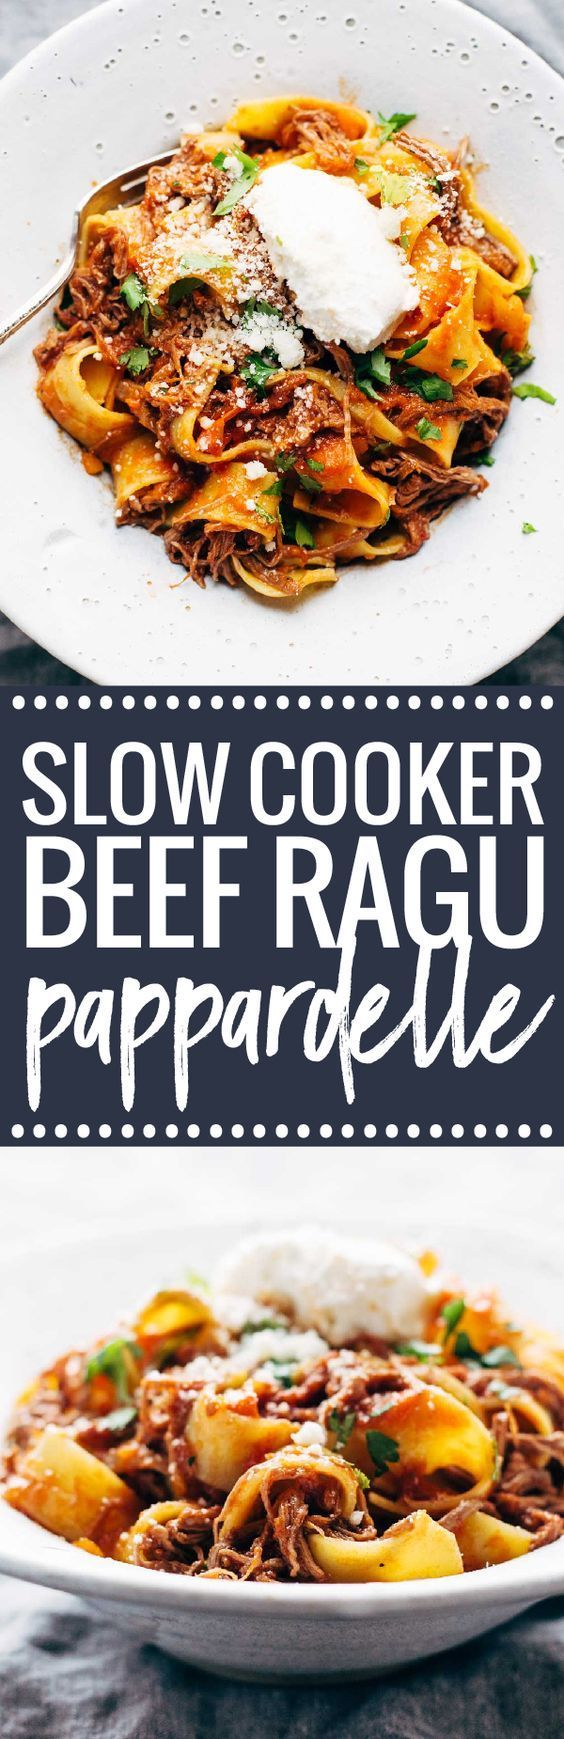 Slow Cooker Beef Ragu with Pappardelle - easy comfort food from the new Skinnytaste cookbook! | pinchofyum.com